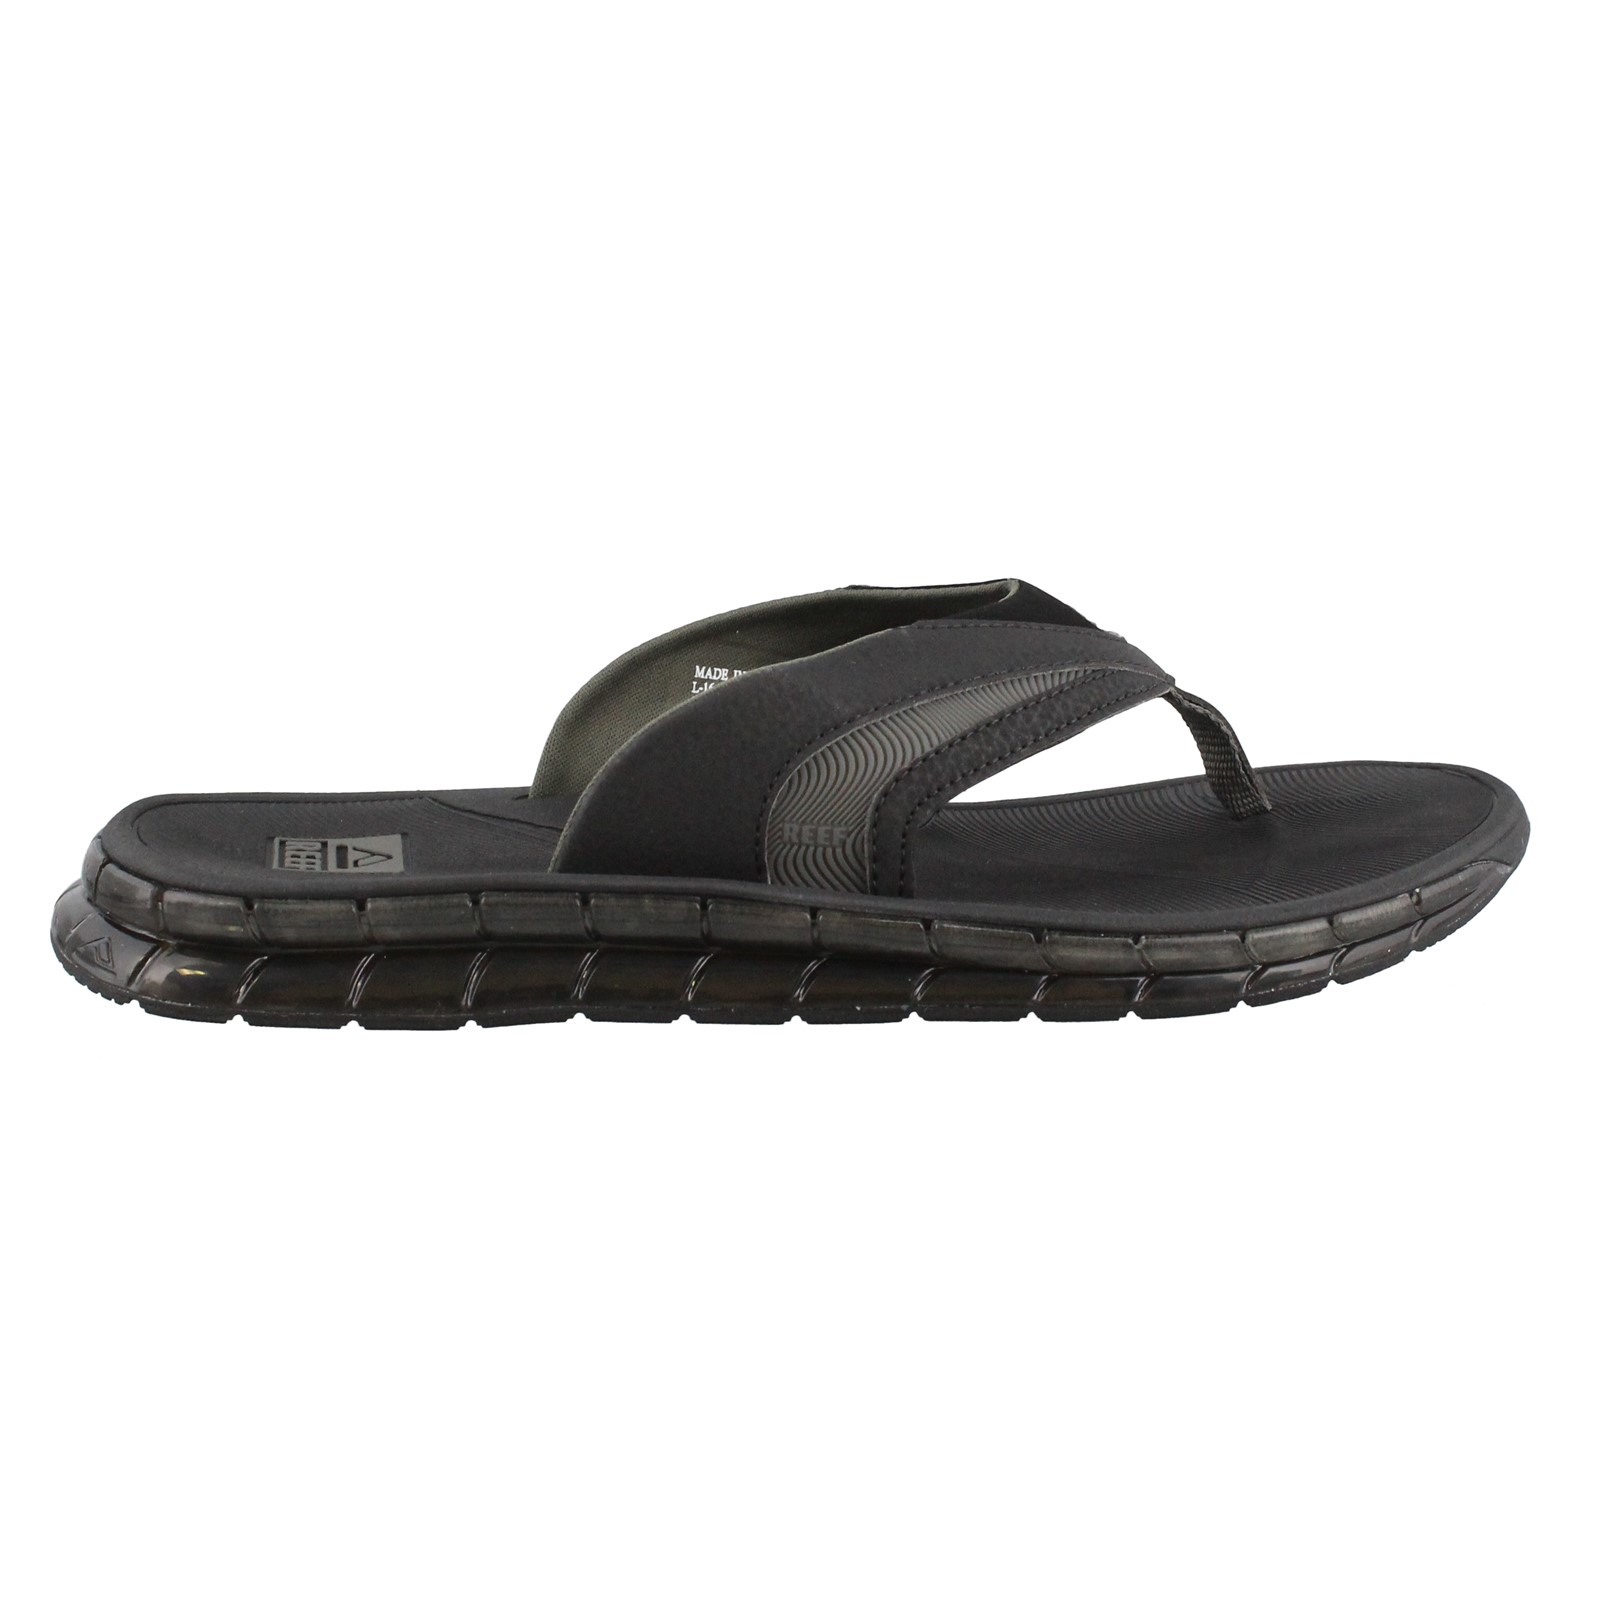 Men's Reef, Boster Thong Sandals